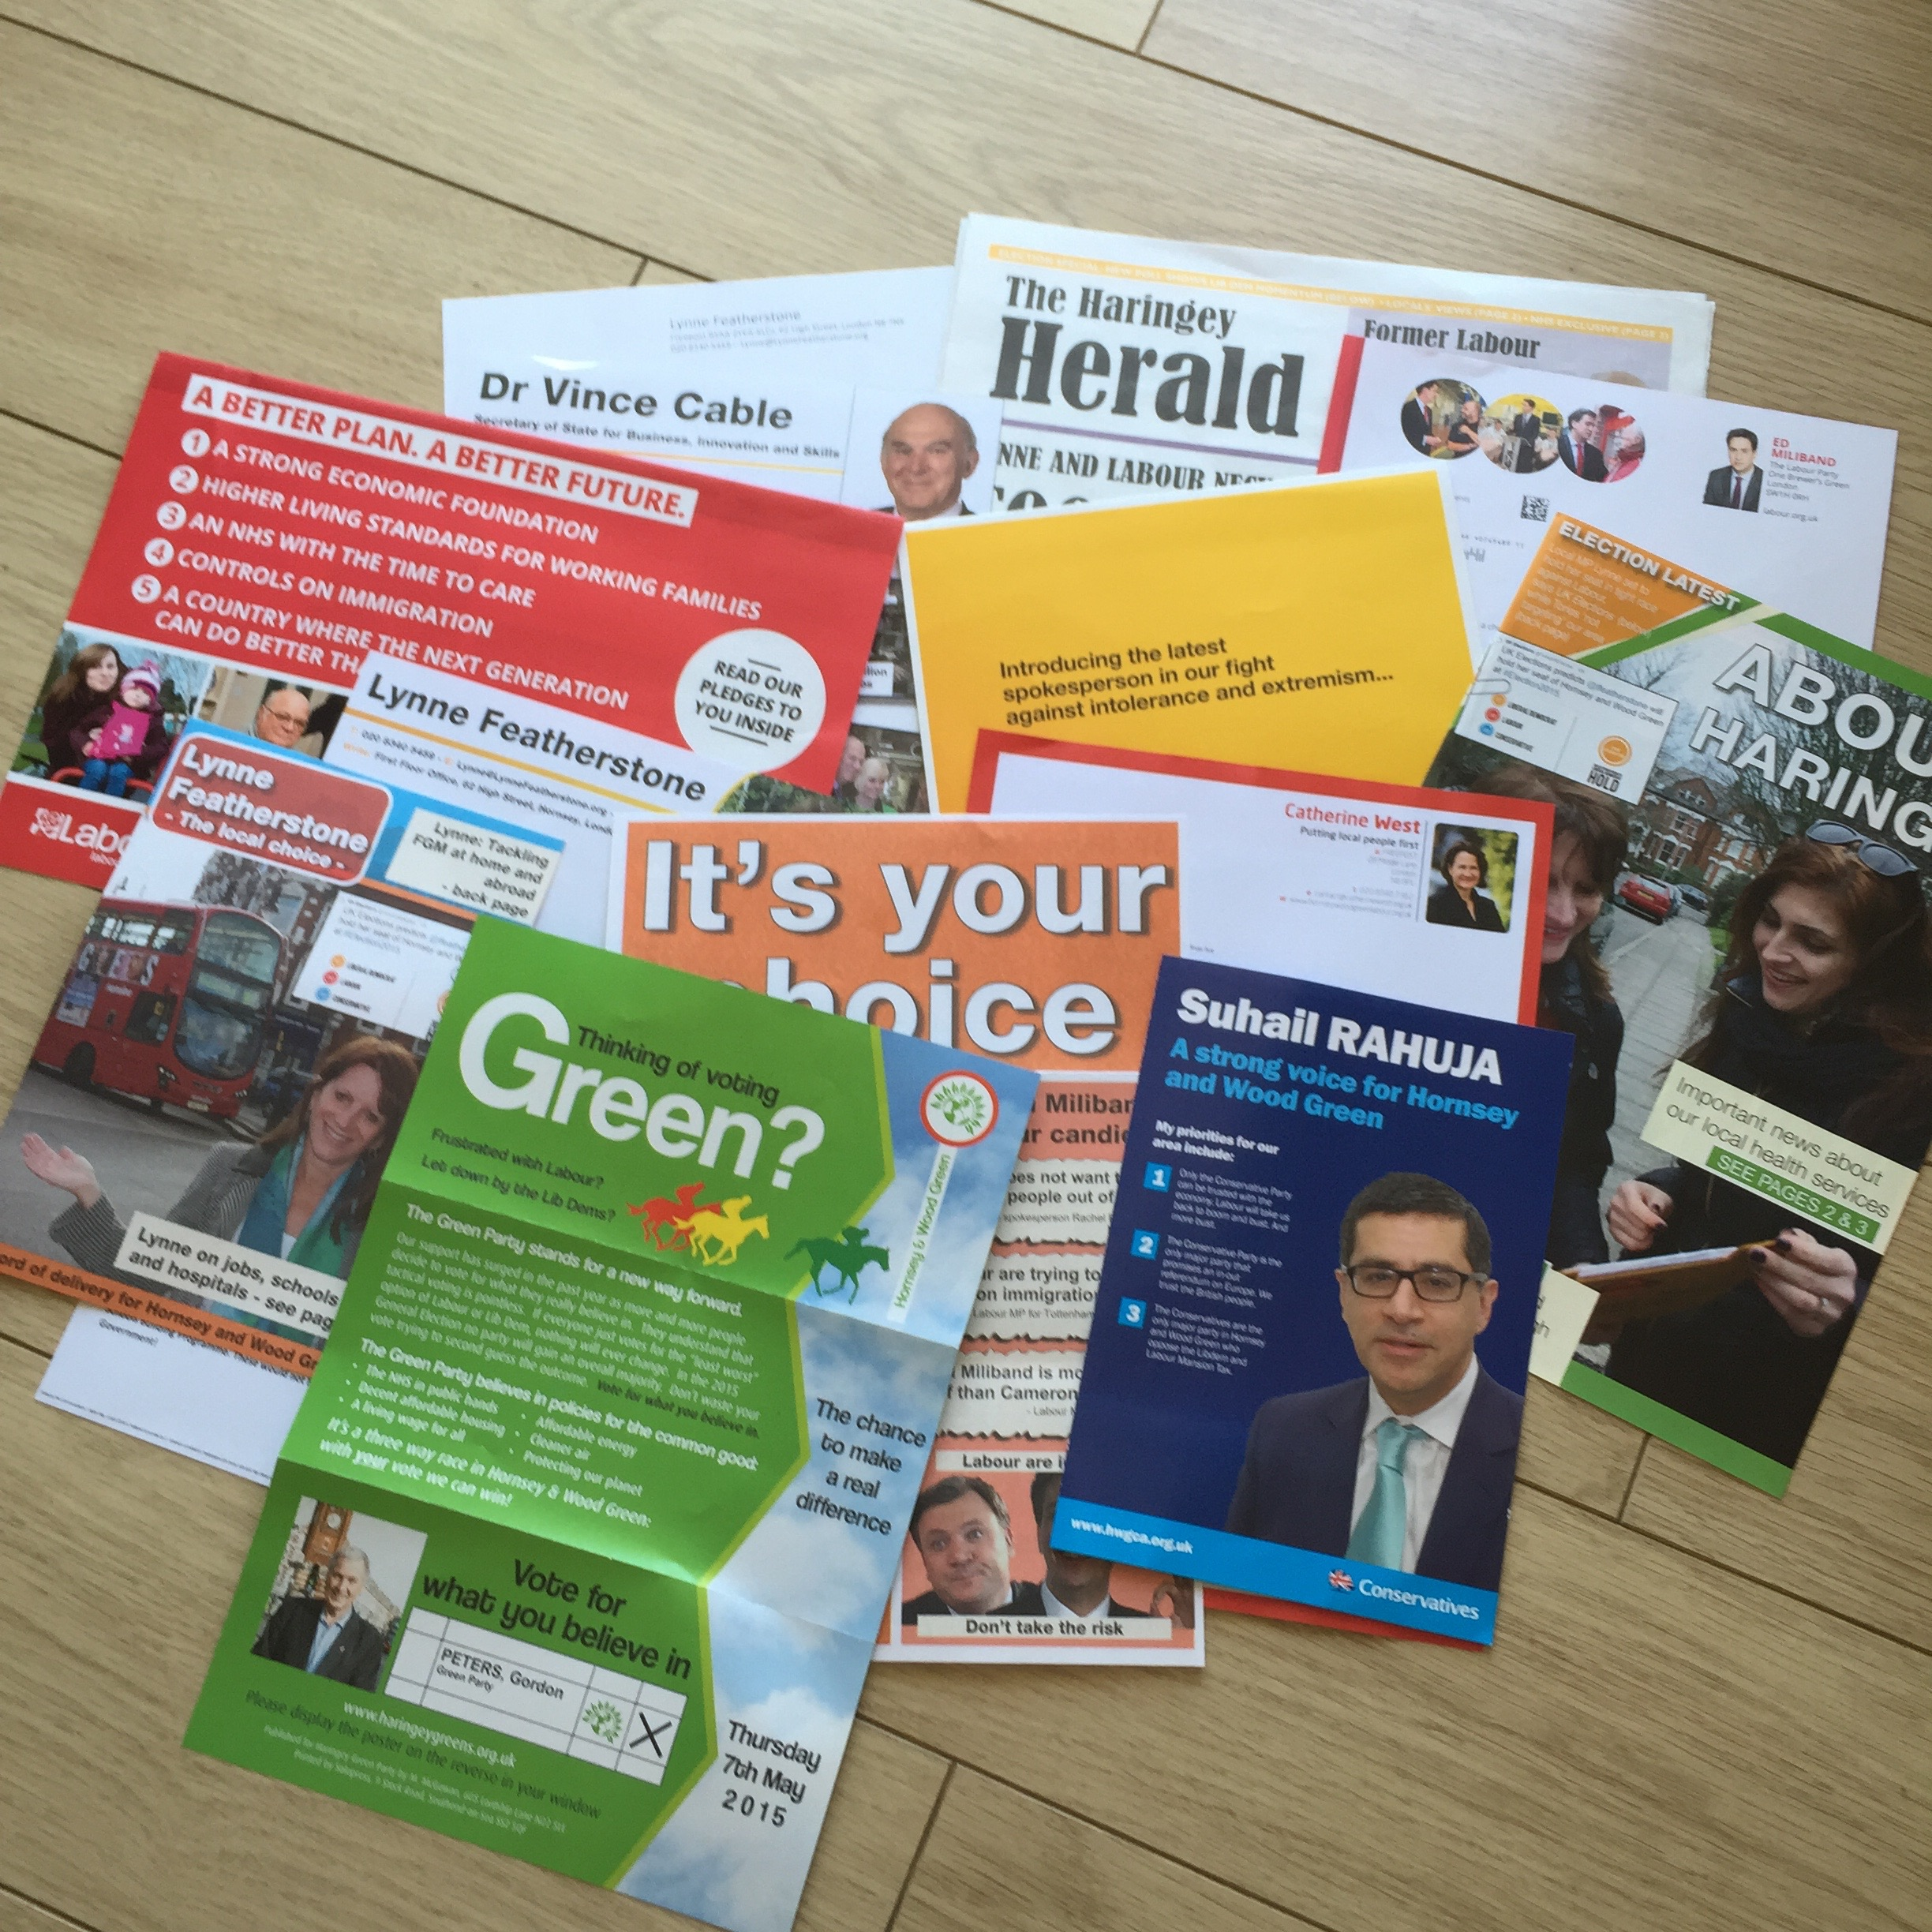 Never have so many leaflets been printed for so little purpose...